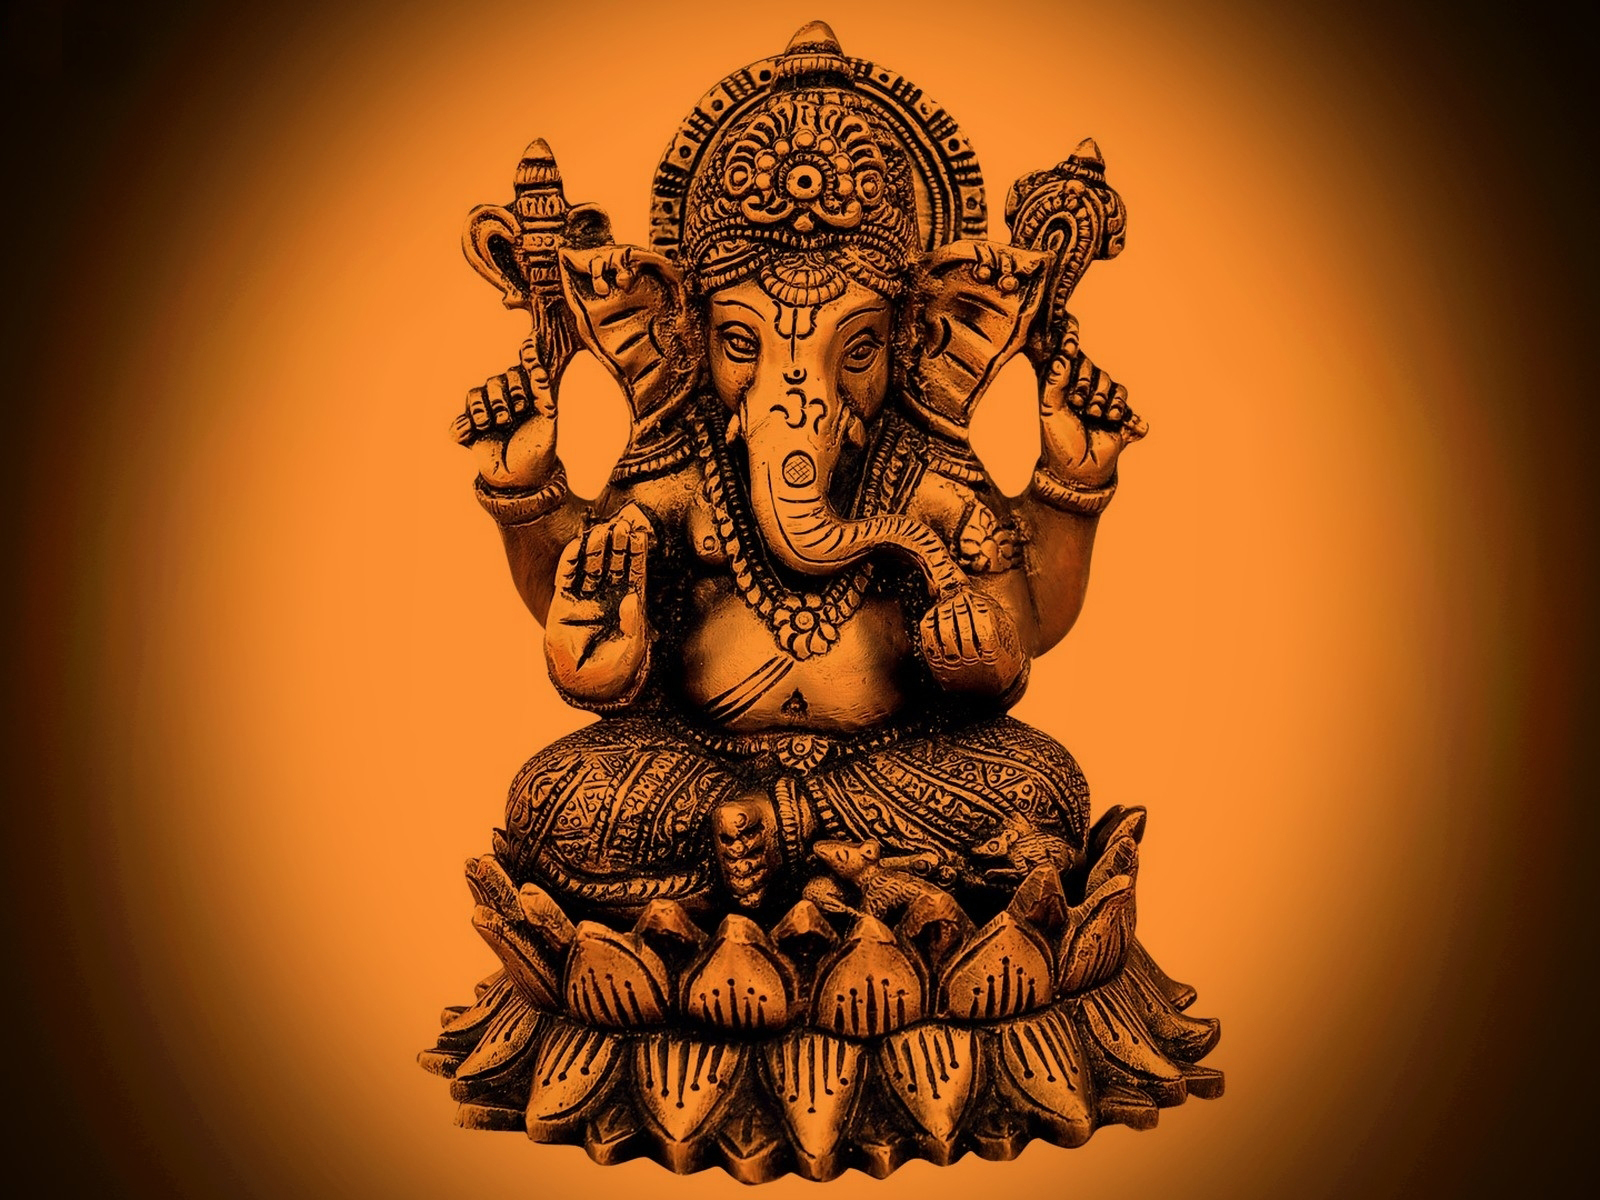 2020 Shri Ganesh Wallpaper Hd Best 2020 Collection Festivals On Web